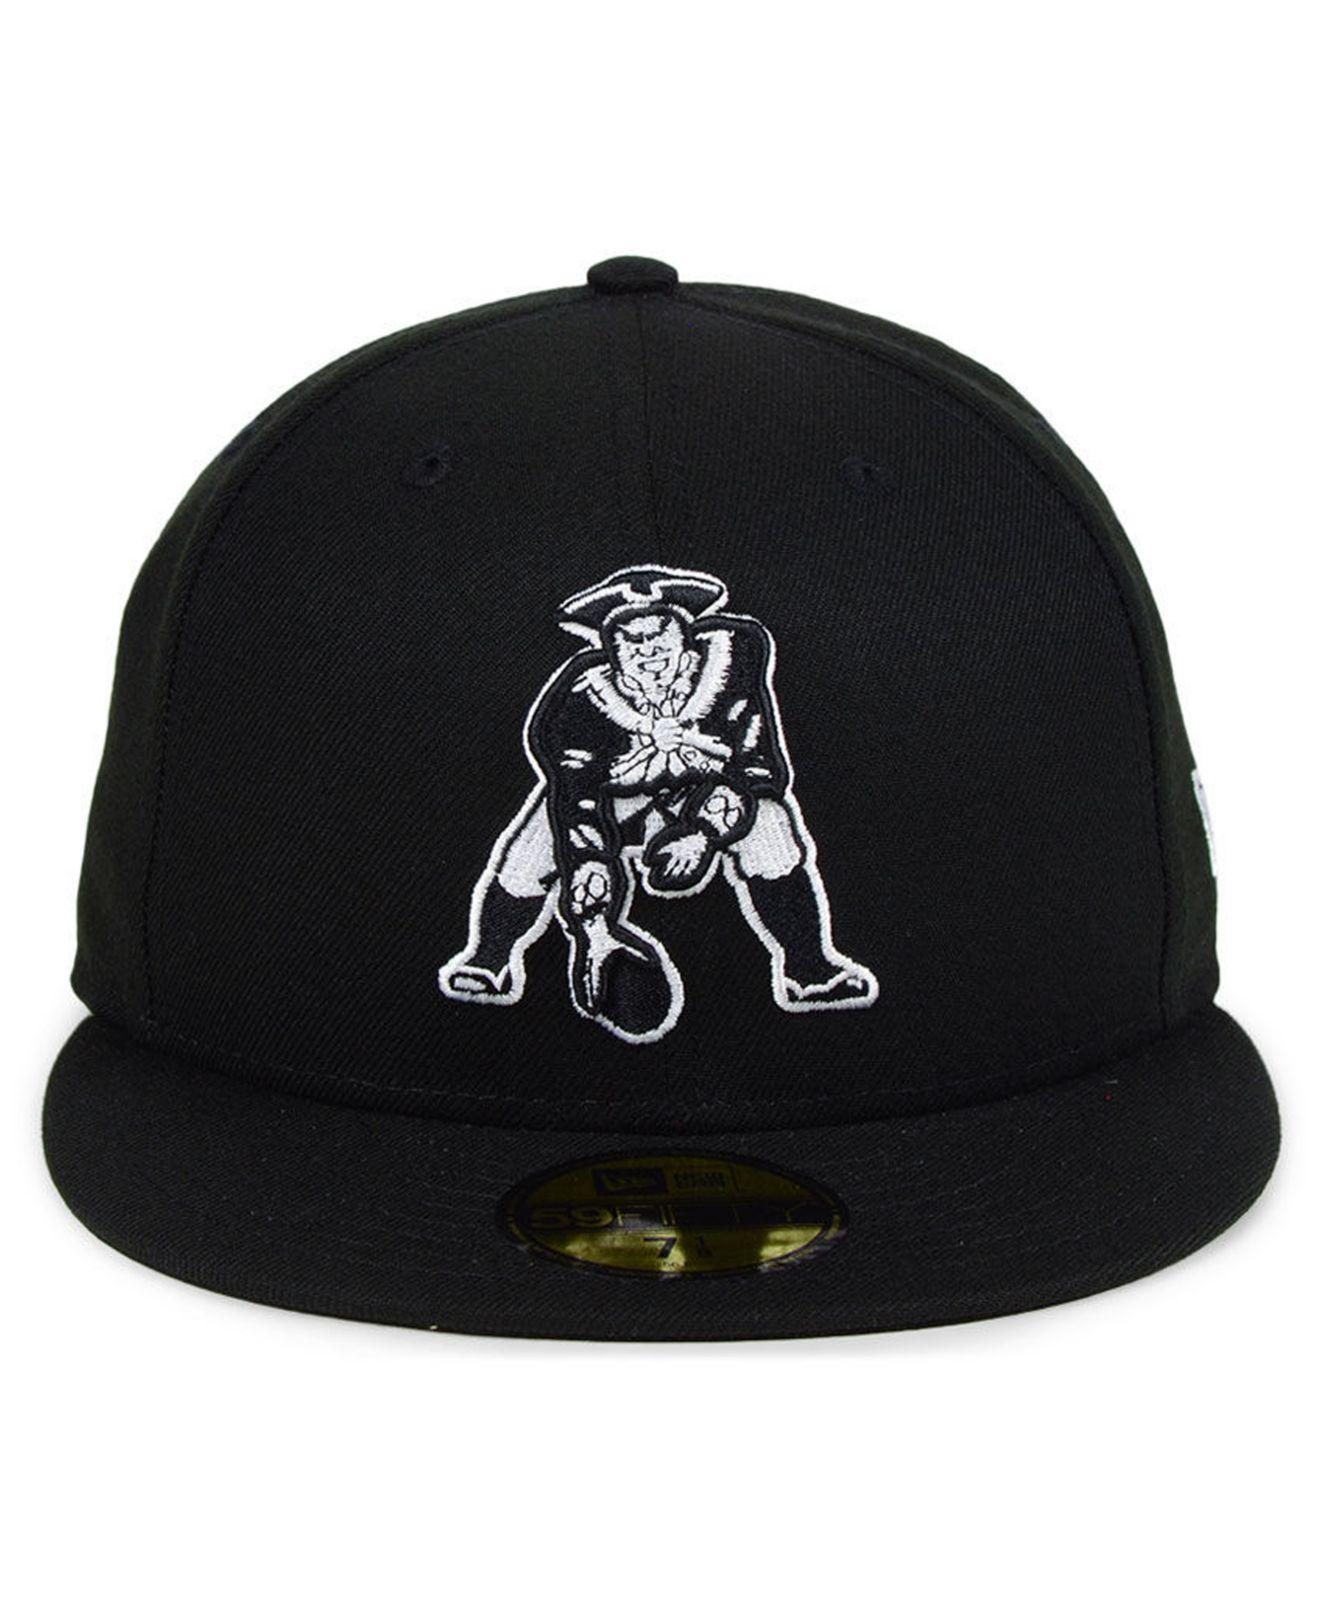 brand new 3b0ca 6201d KTZ - New England Patriots Black And White 59fifty Fitted Cap for Men -  Lyst. View fullscreen